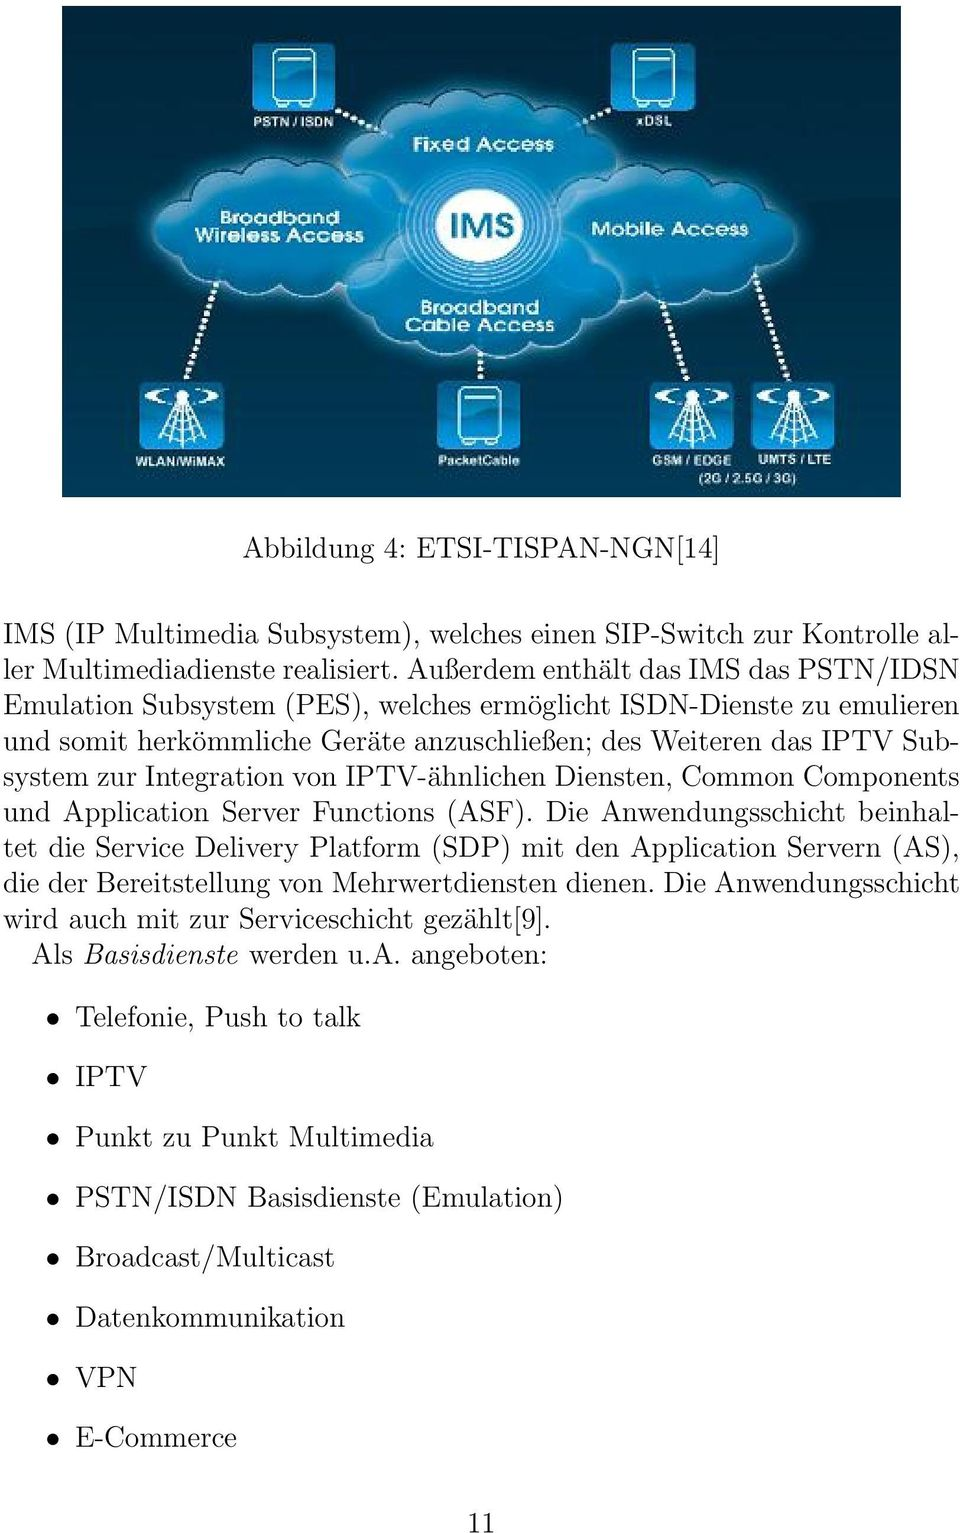 Integration von IPTV-ähnlichen Diensten, Common Components und Application Server Functions (ASF).